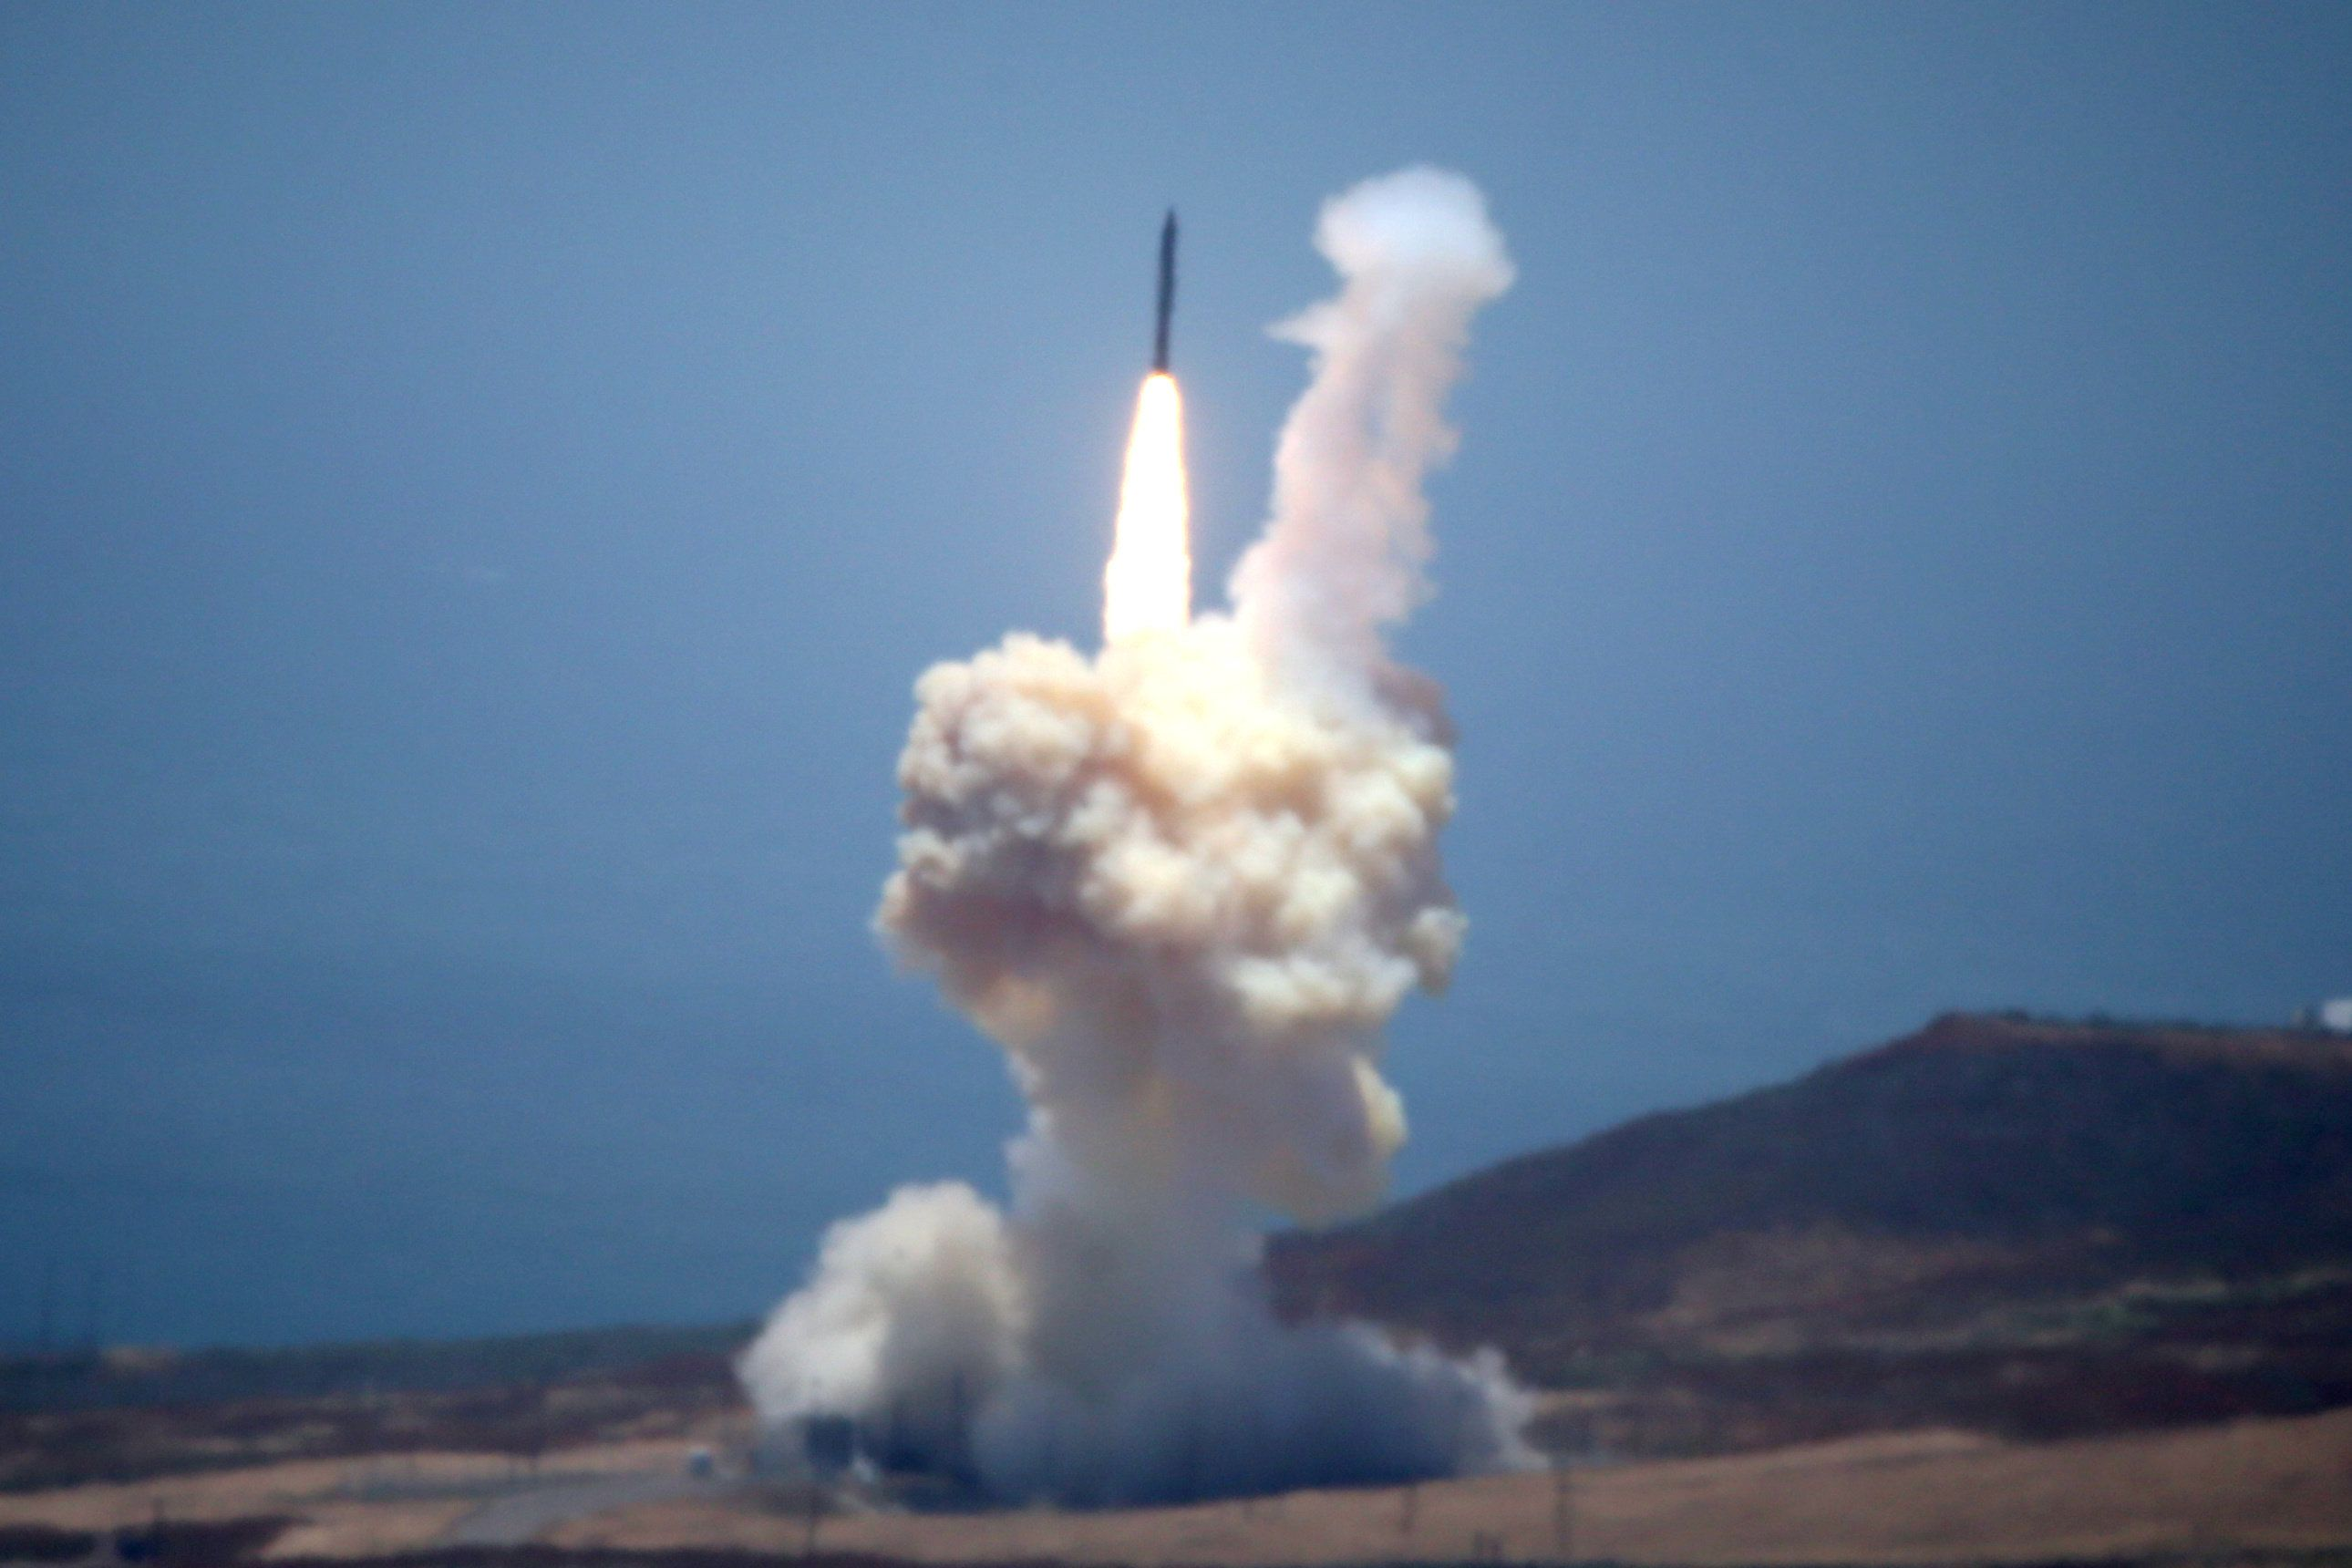 The Ground-based Midcourse Defense (GMD) element of the U.S. ballistic missile defense system launches during a flight test f